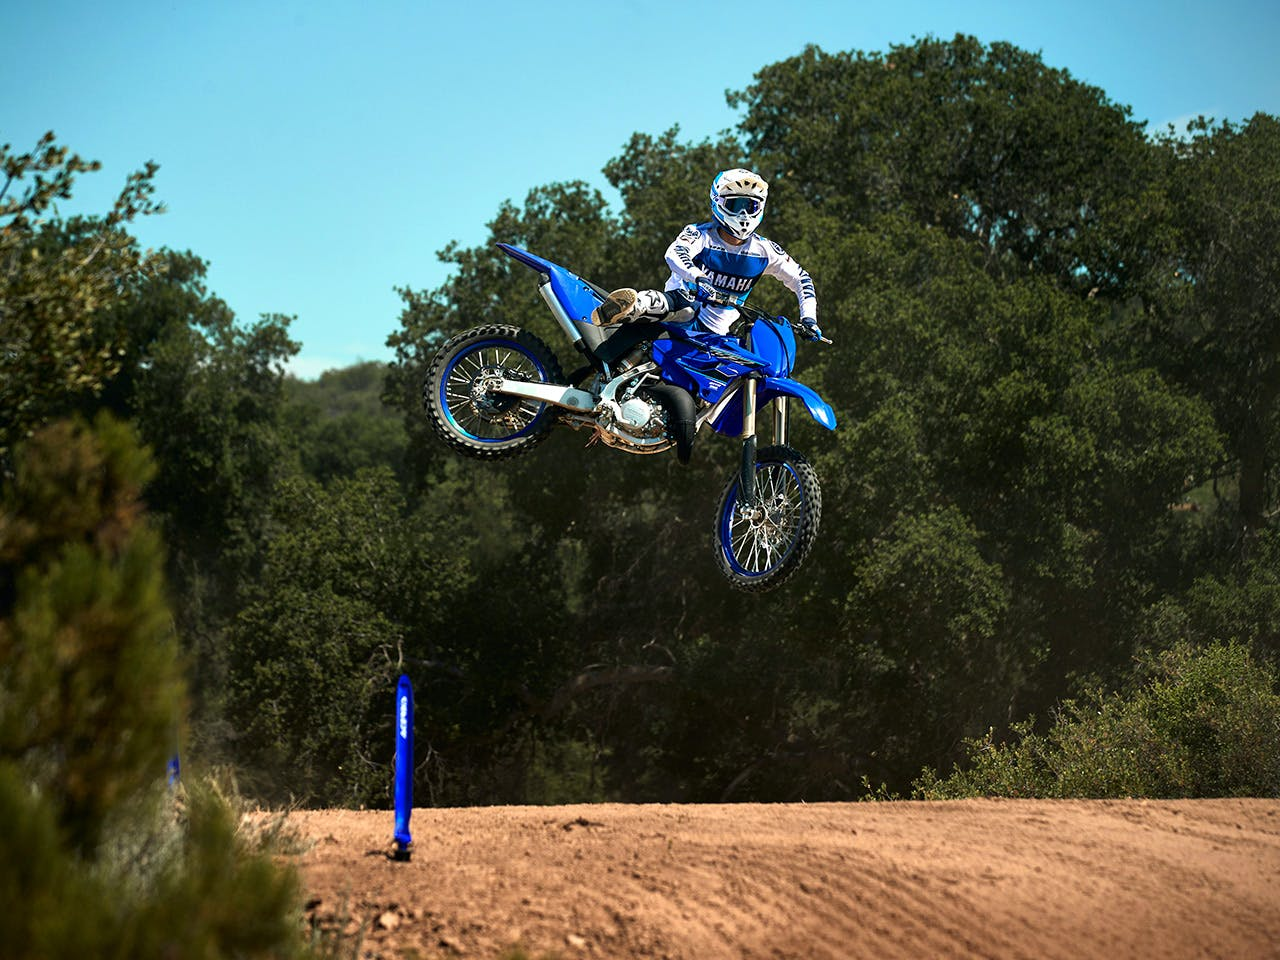 Yamaha YZ125 in team yamaha blue colour, being ridden off-track